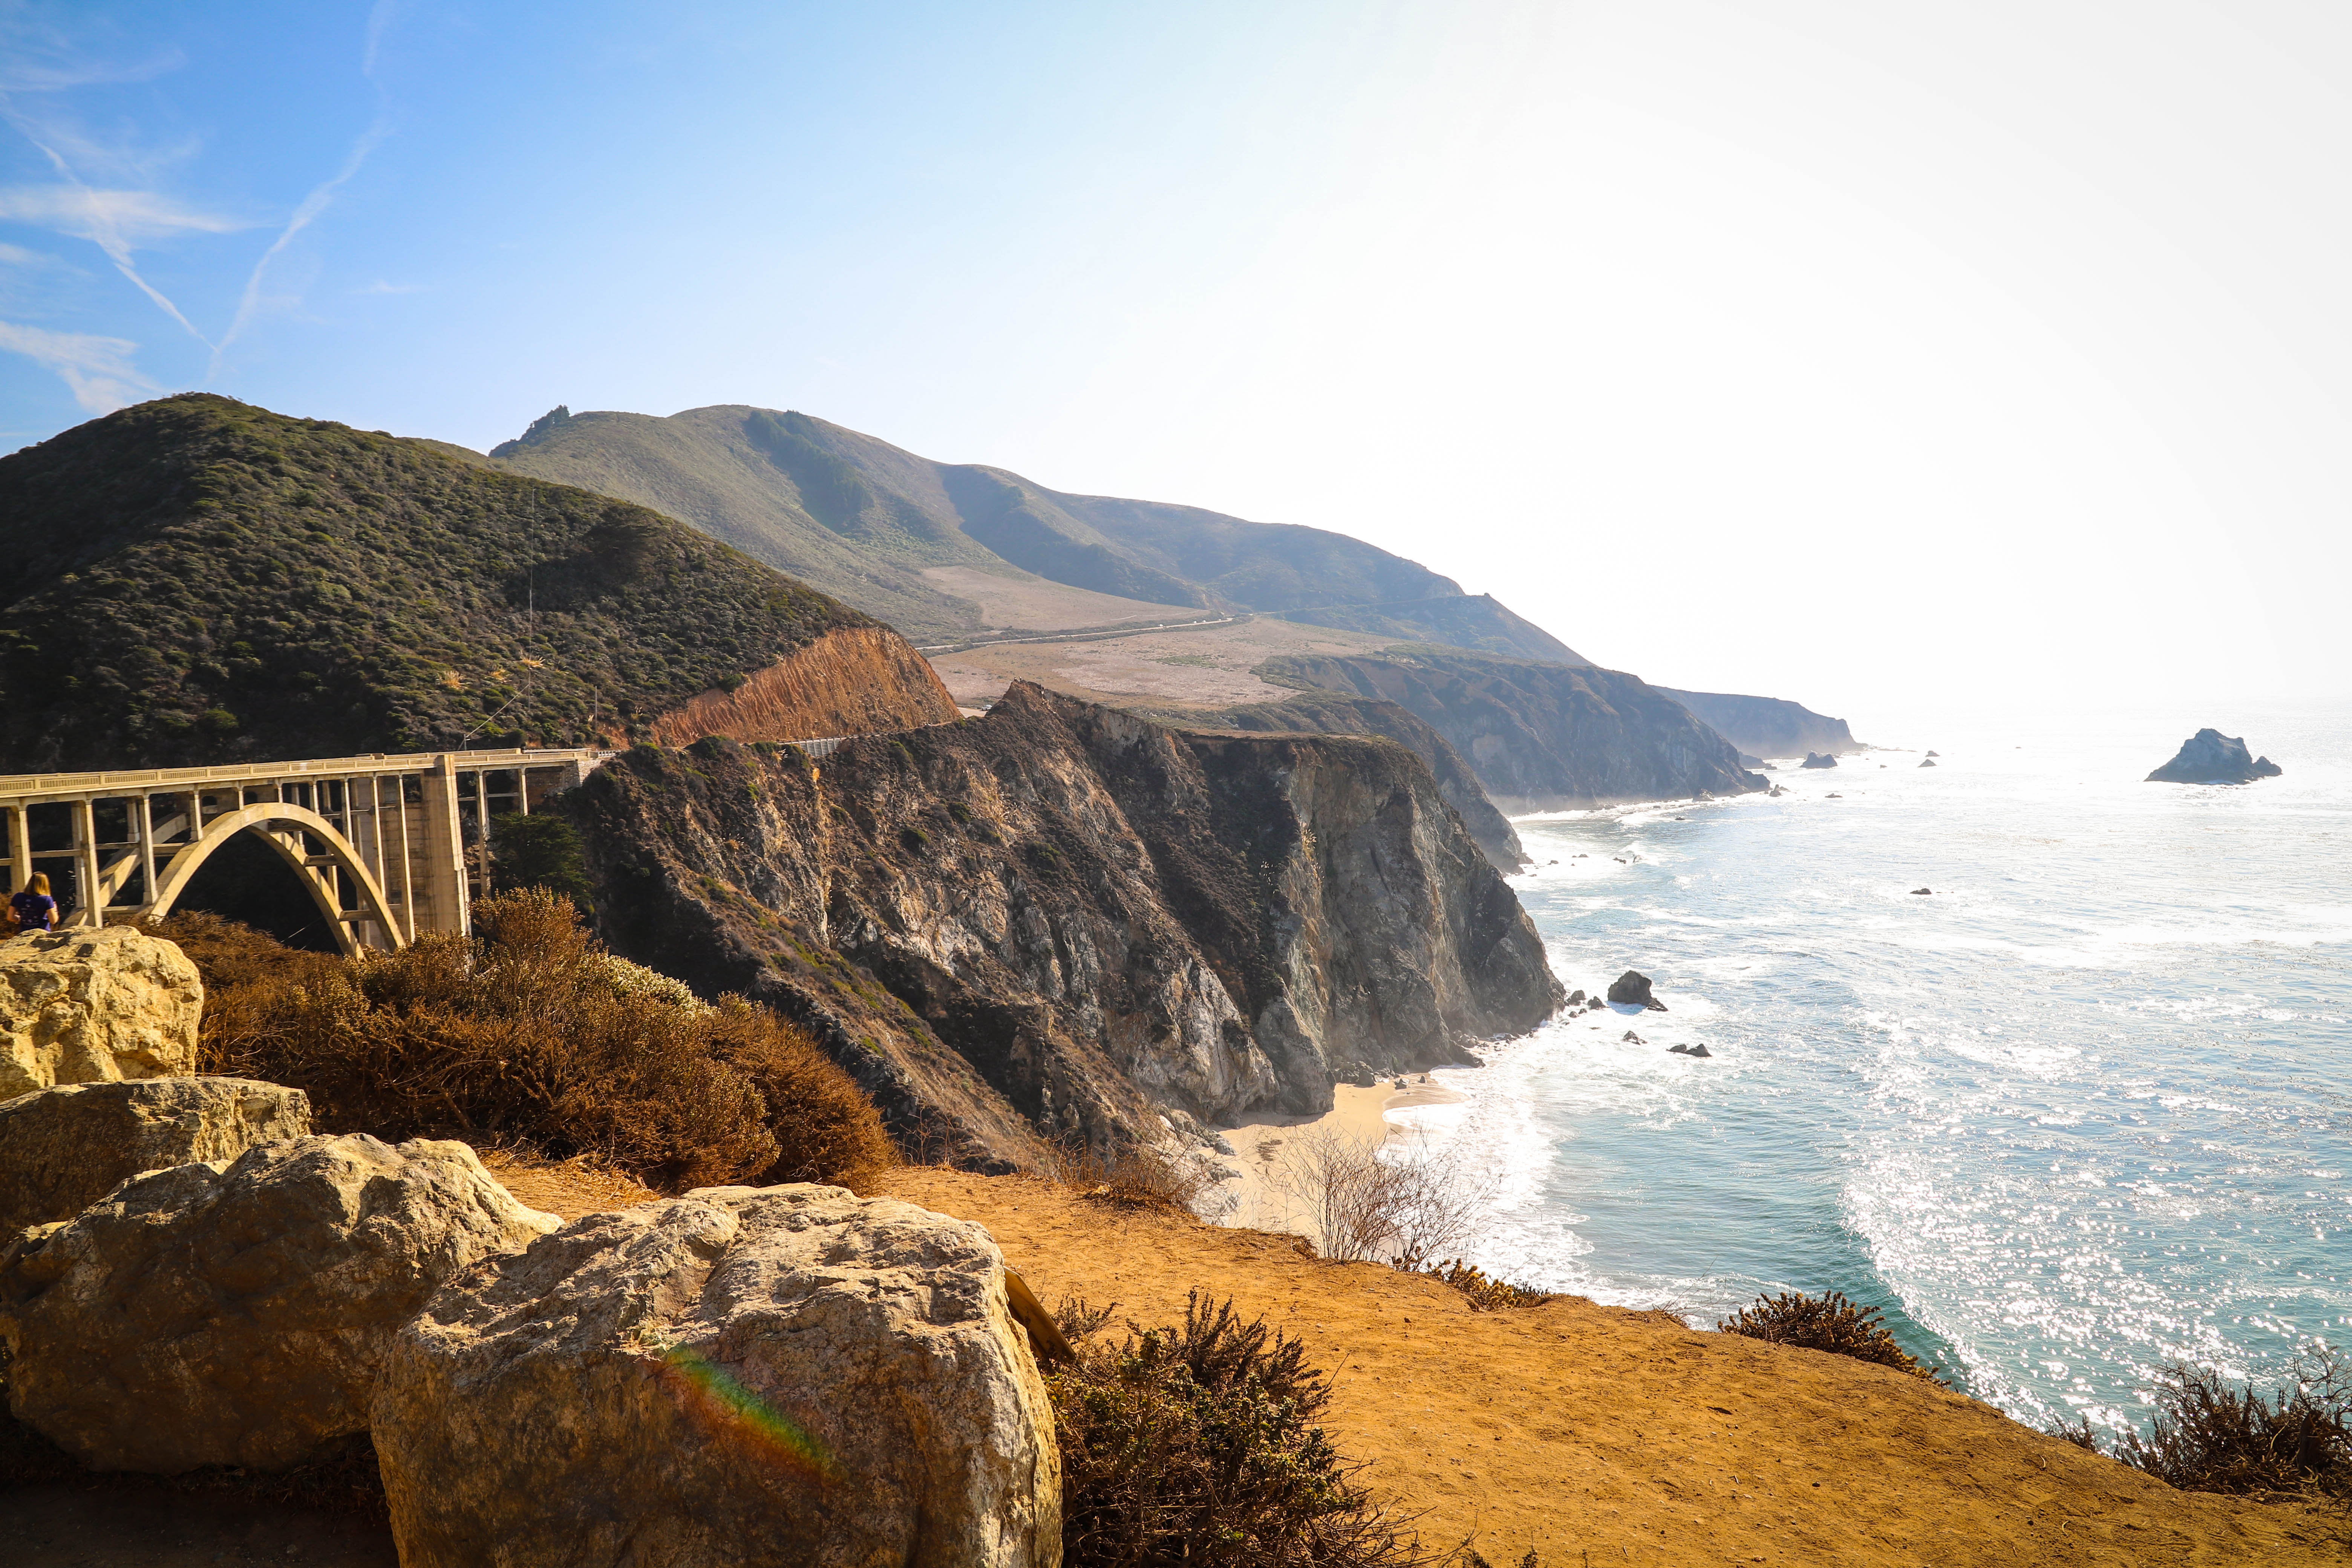 Big Sur, California, USA. November 14-17, 2018.